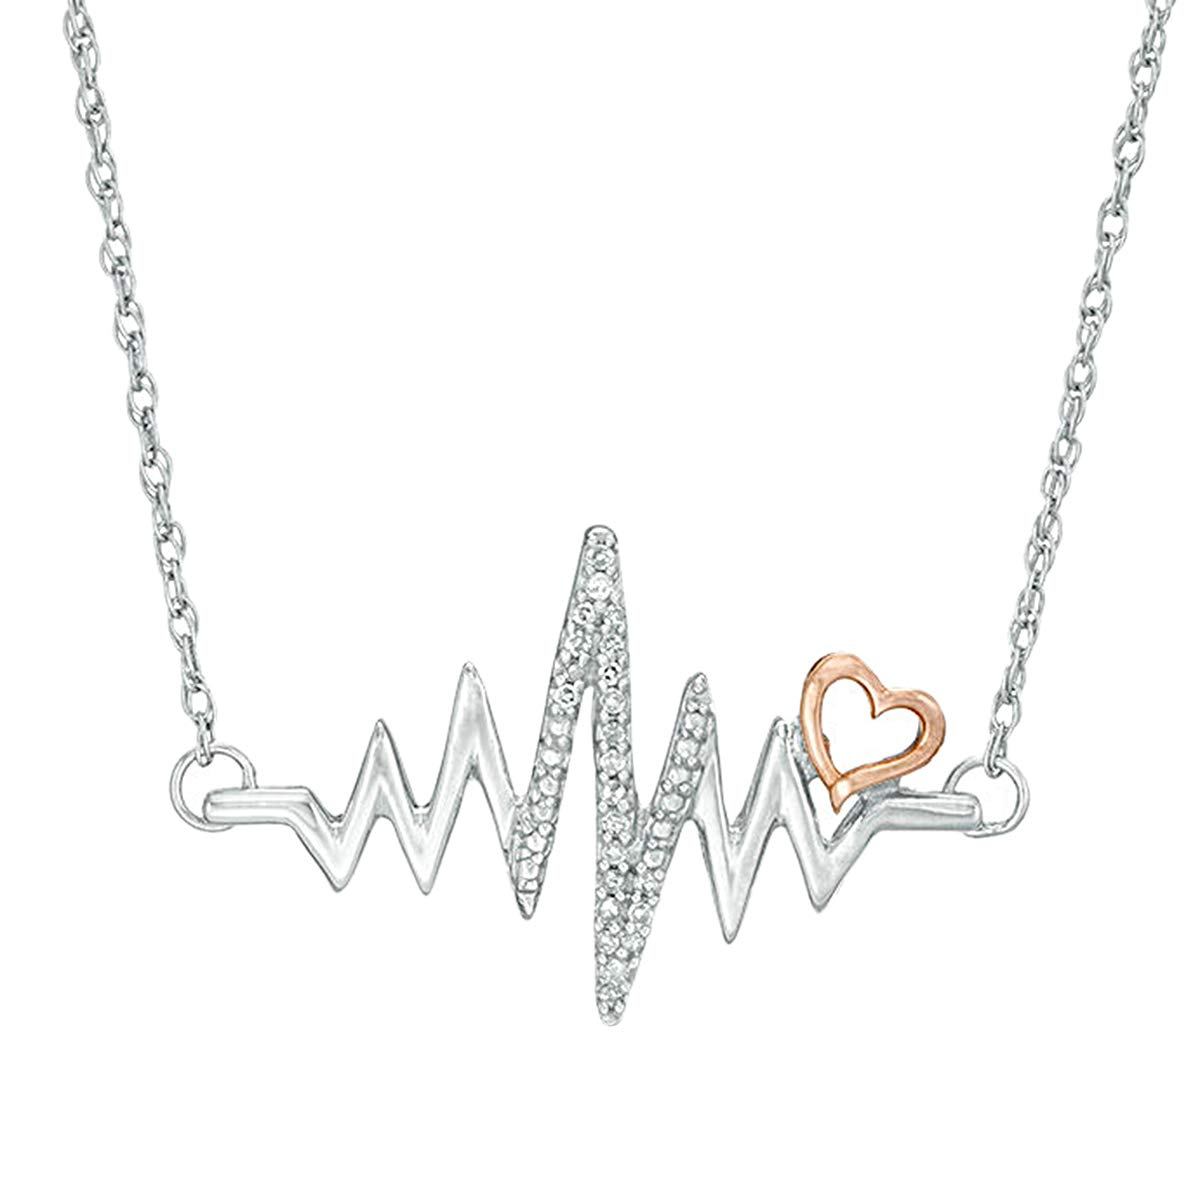 10k Two Tone Gold 0.10 Ct Round Cut Simulated Diamond Heartbeat Pendant With 18 Chain .925 Silver